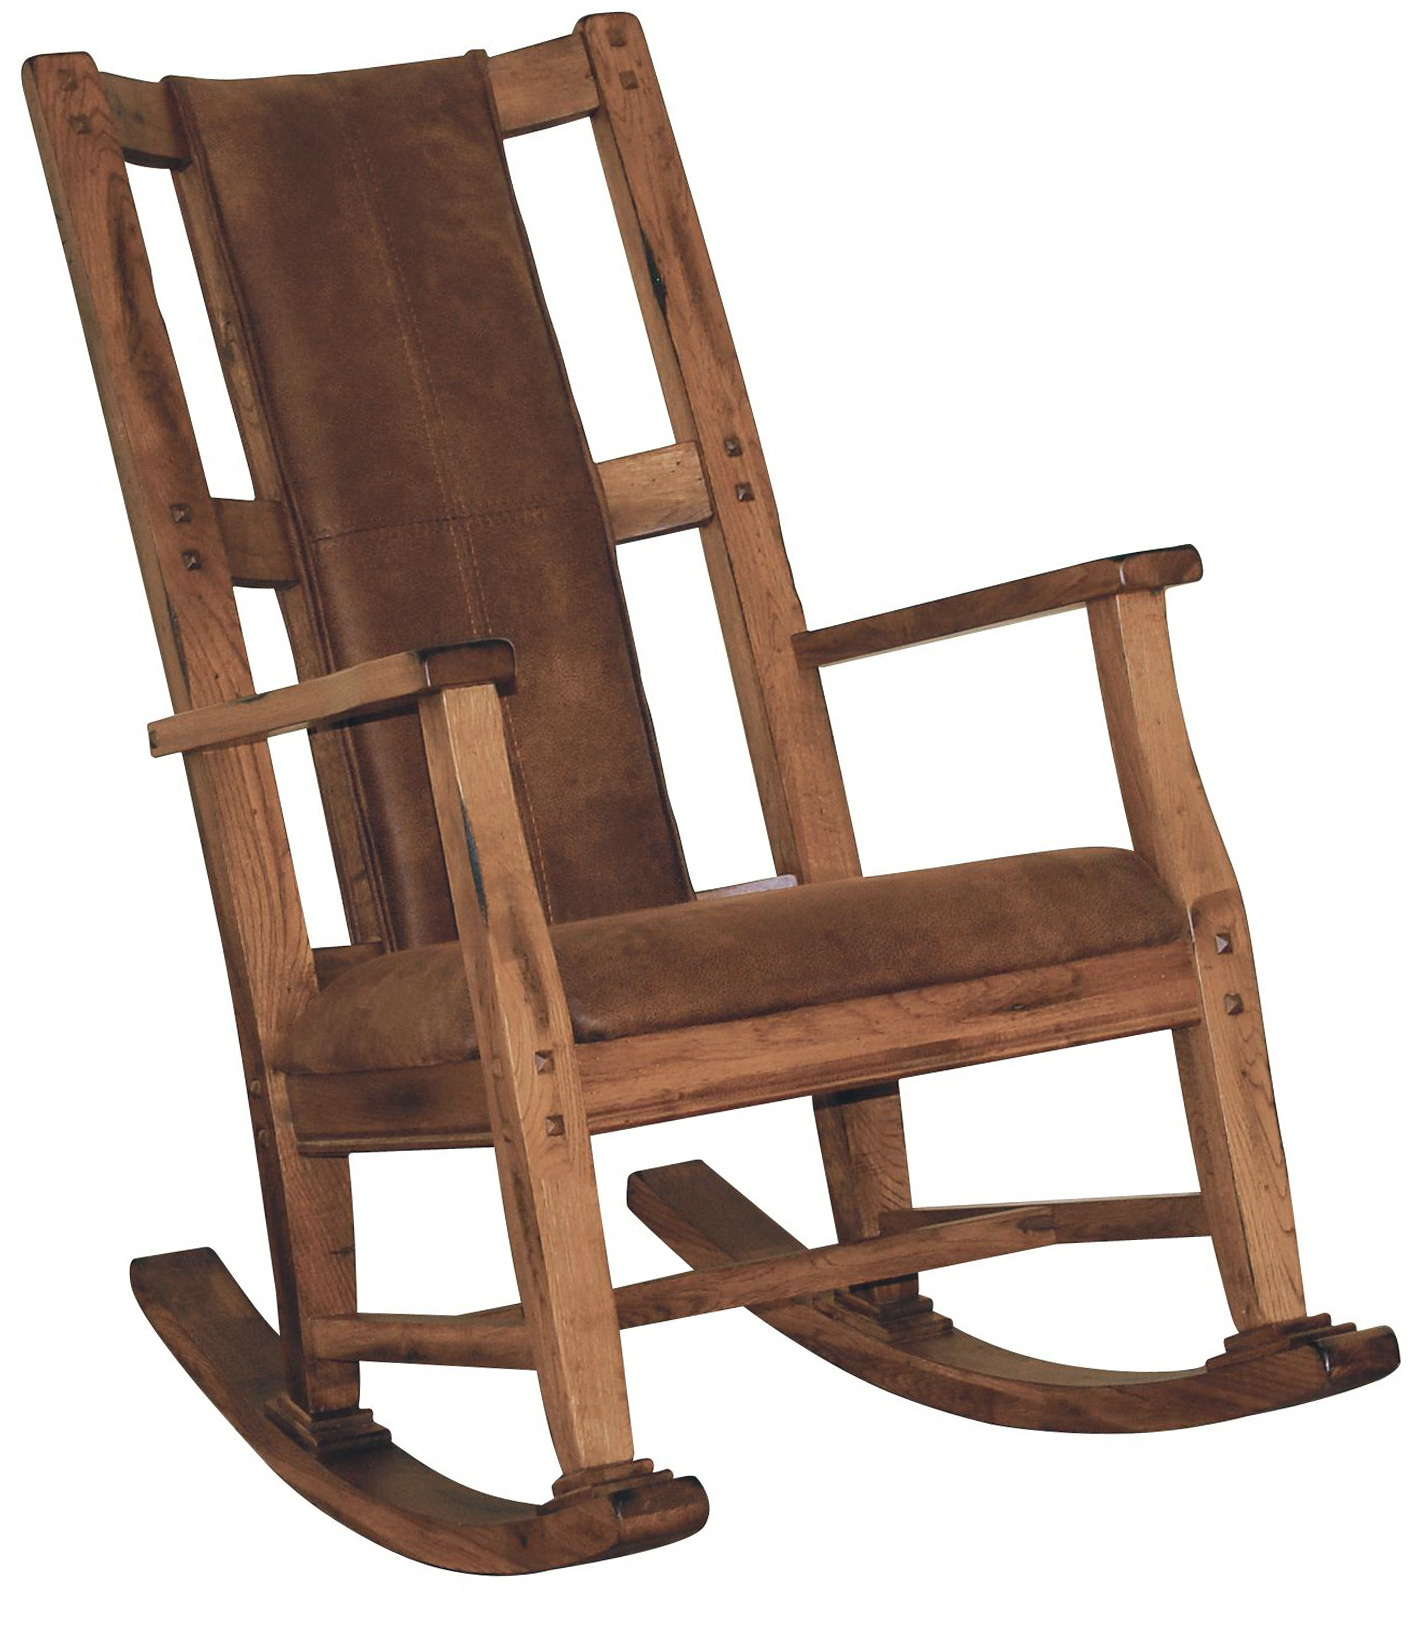 Rocking Chair Seat Cushions And Backs